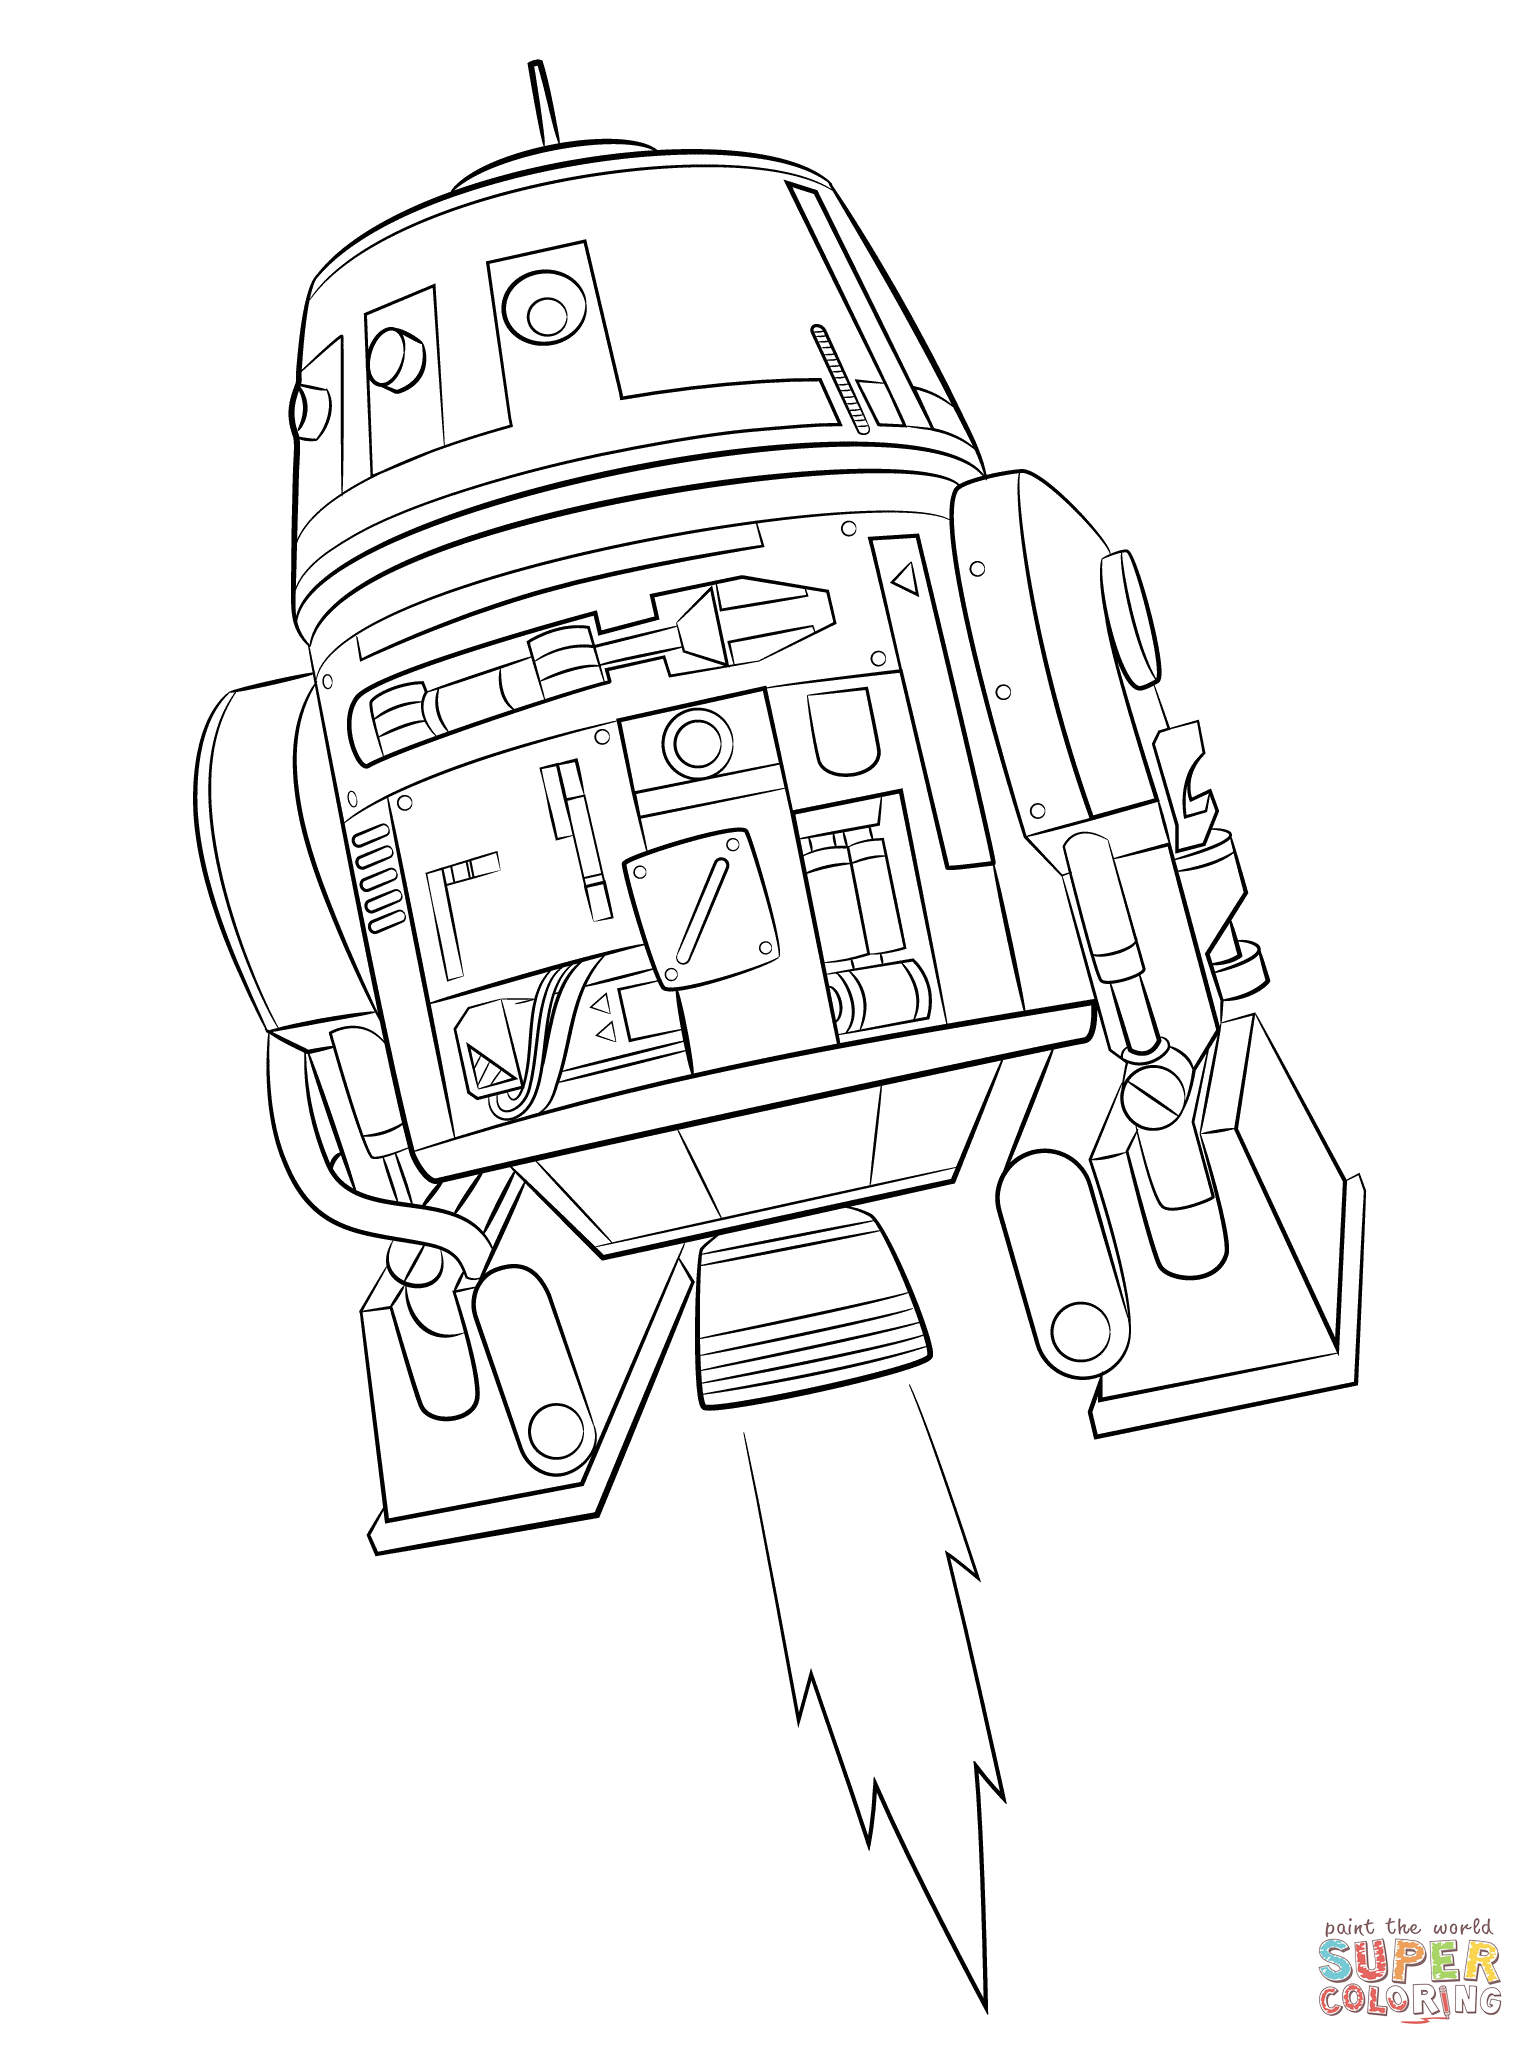 Star Wars Rebels Chopper Coloring Page Supercoloring Com Kika